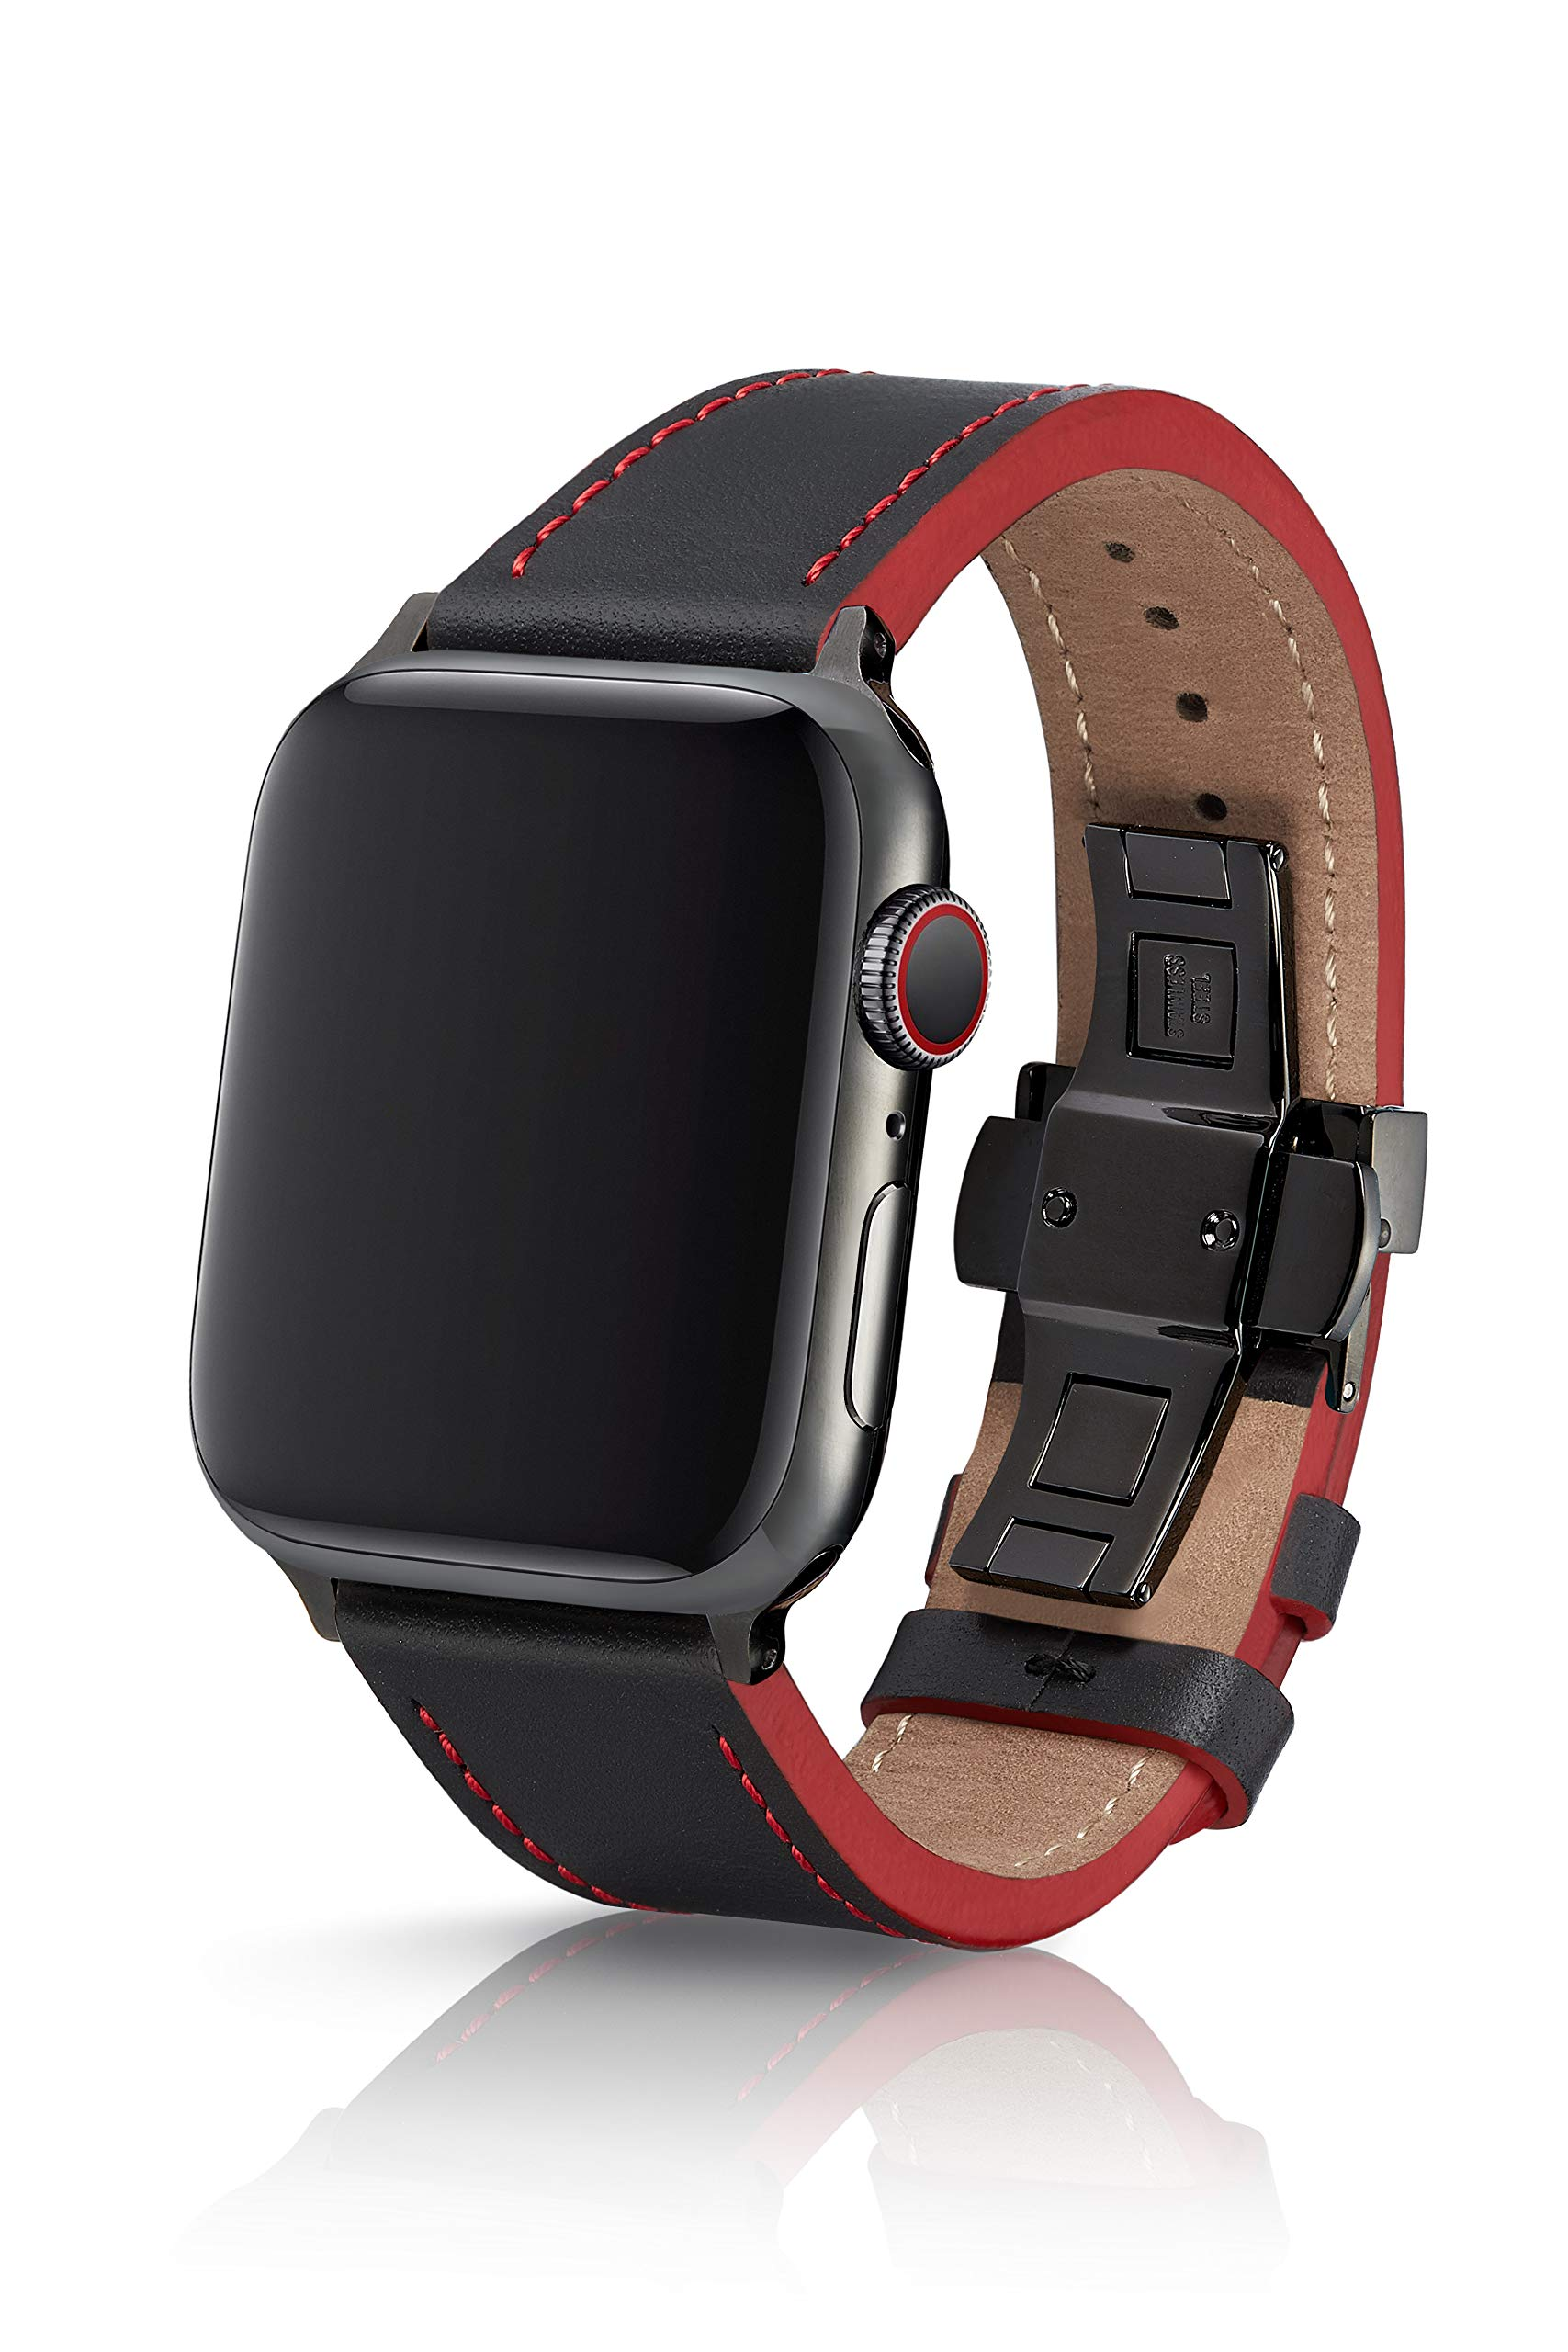 42/44mm JUUK Korza Ruge Premium Watch Band Made for The Apple Watch, Made with Genuine Italian Leather with a Solid Stainless Steel deployant Buckle (Black Components)